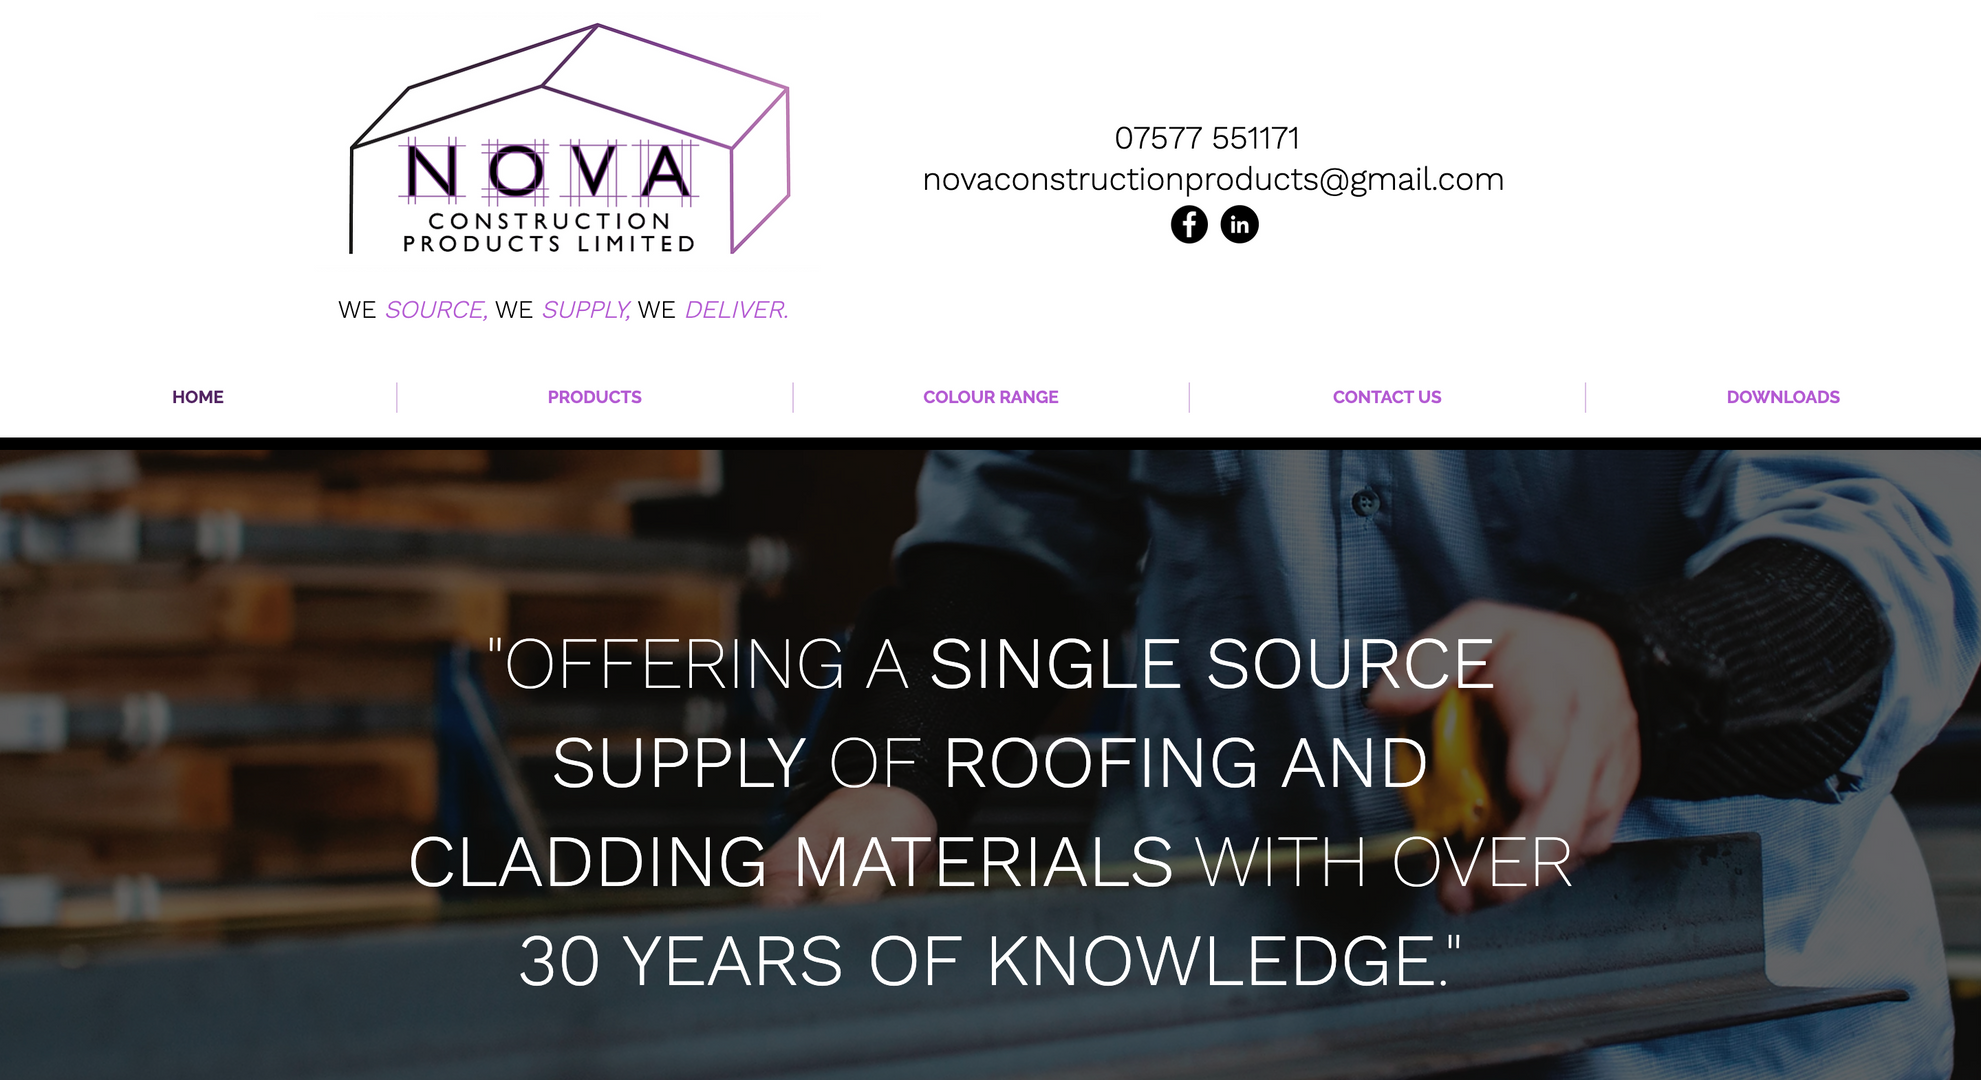 Nova Construction Products Limited Websi